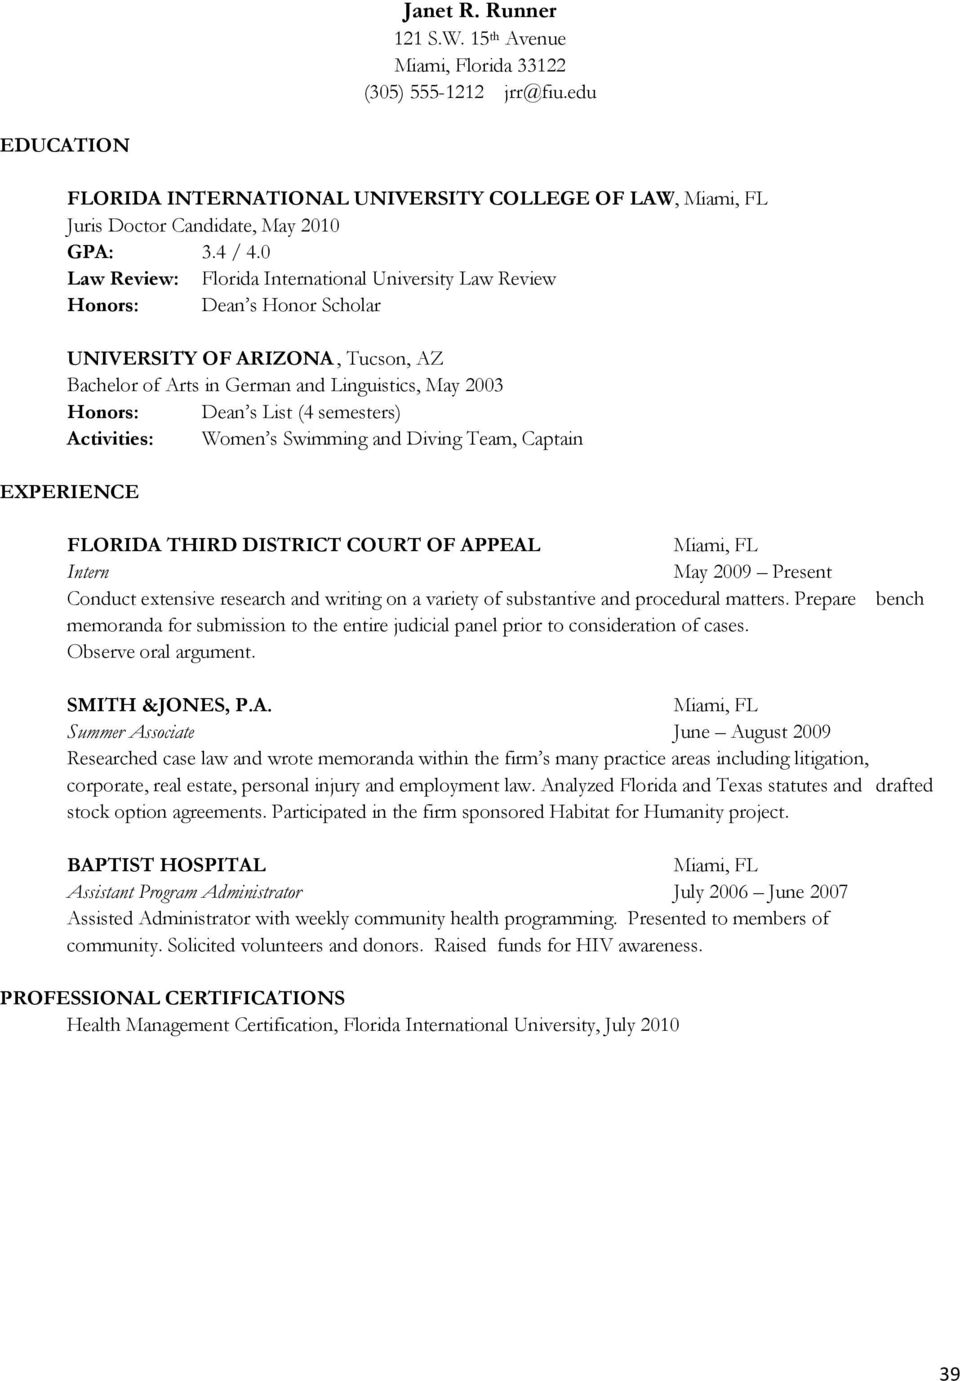 semesters) Activities: Women s Swimming and Diving Team, Captain FLORIDA THIRD DISTRICT COURT OF APPEAL Intern May 2009 Present Conduct extensive research and writing on a variety of substantive and